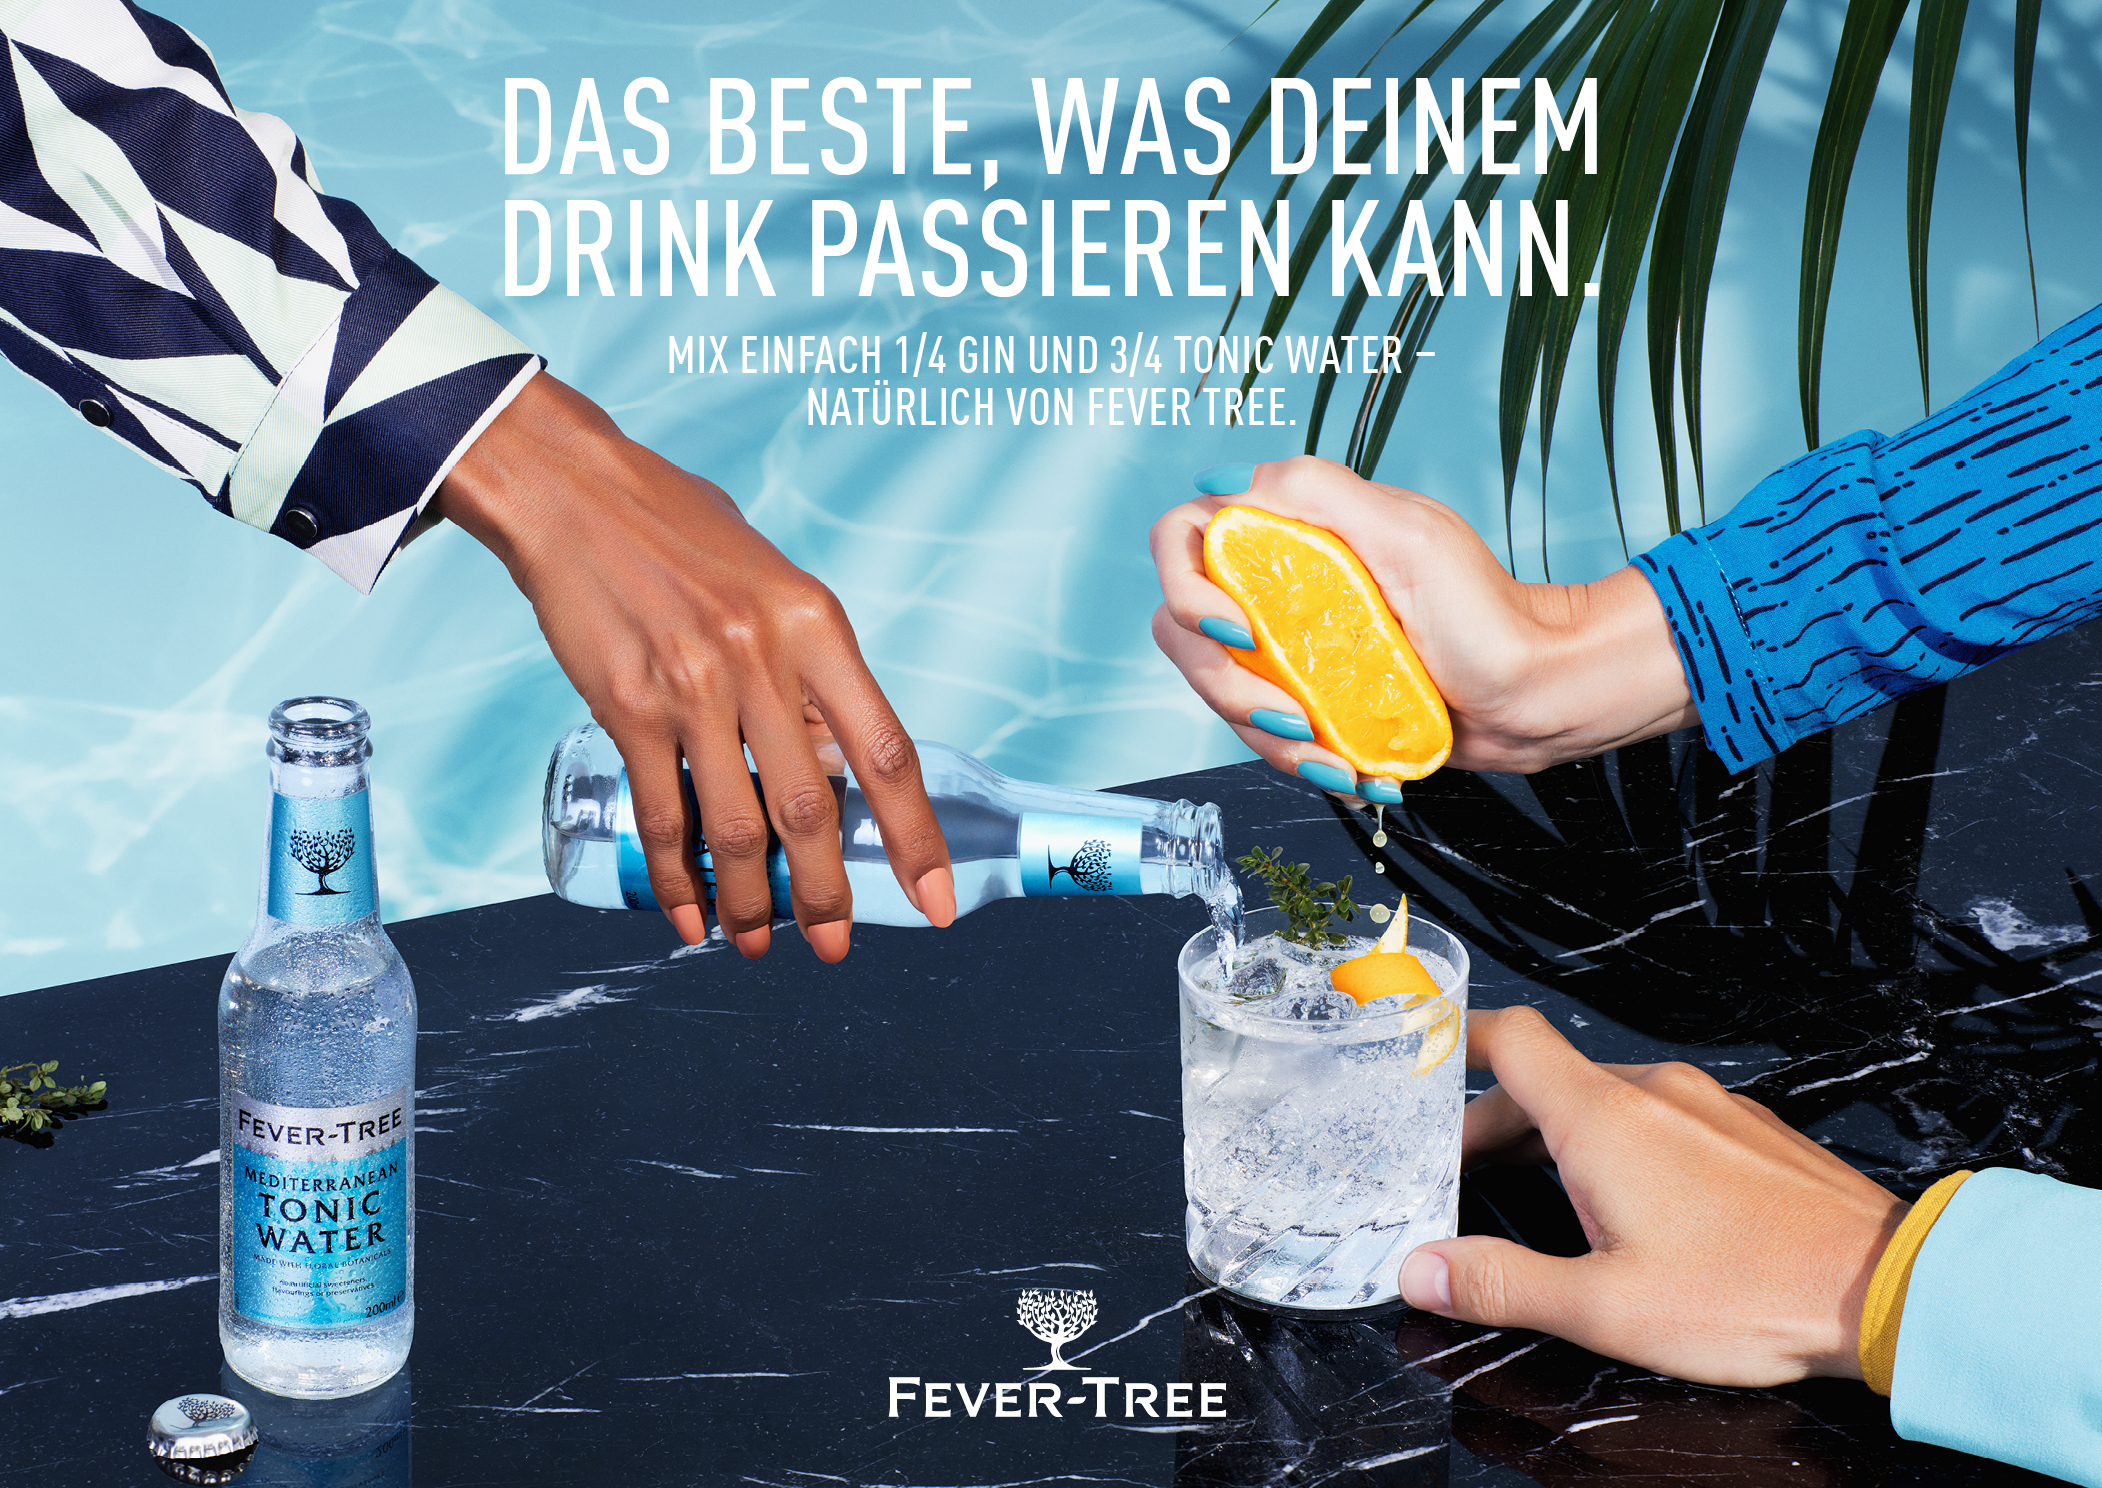 Fever-Tree. Campaign image.